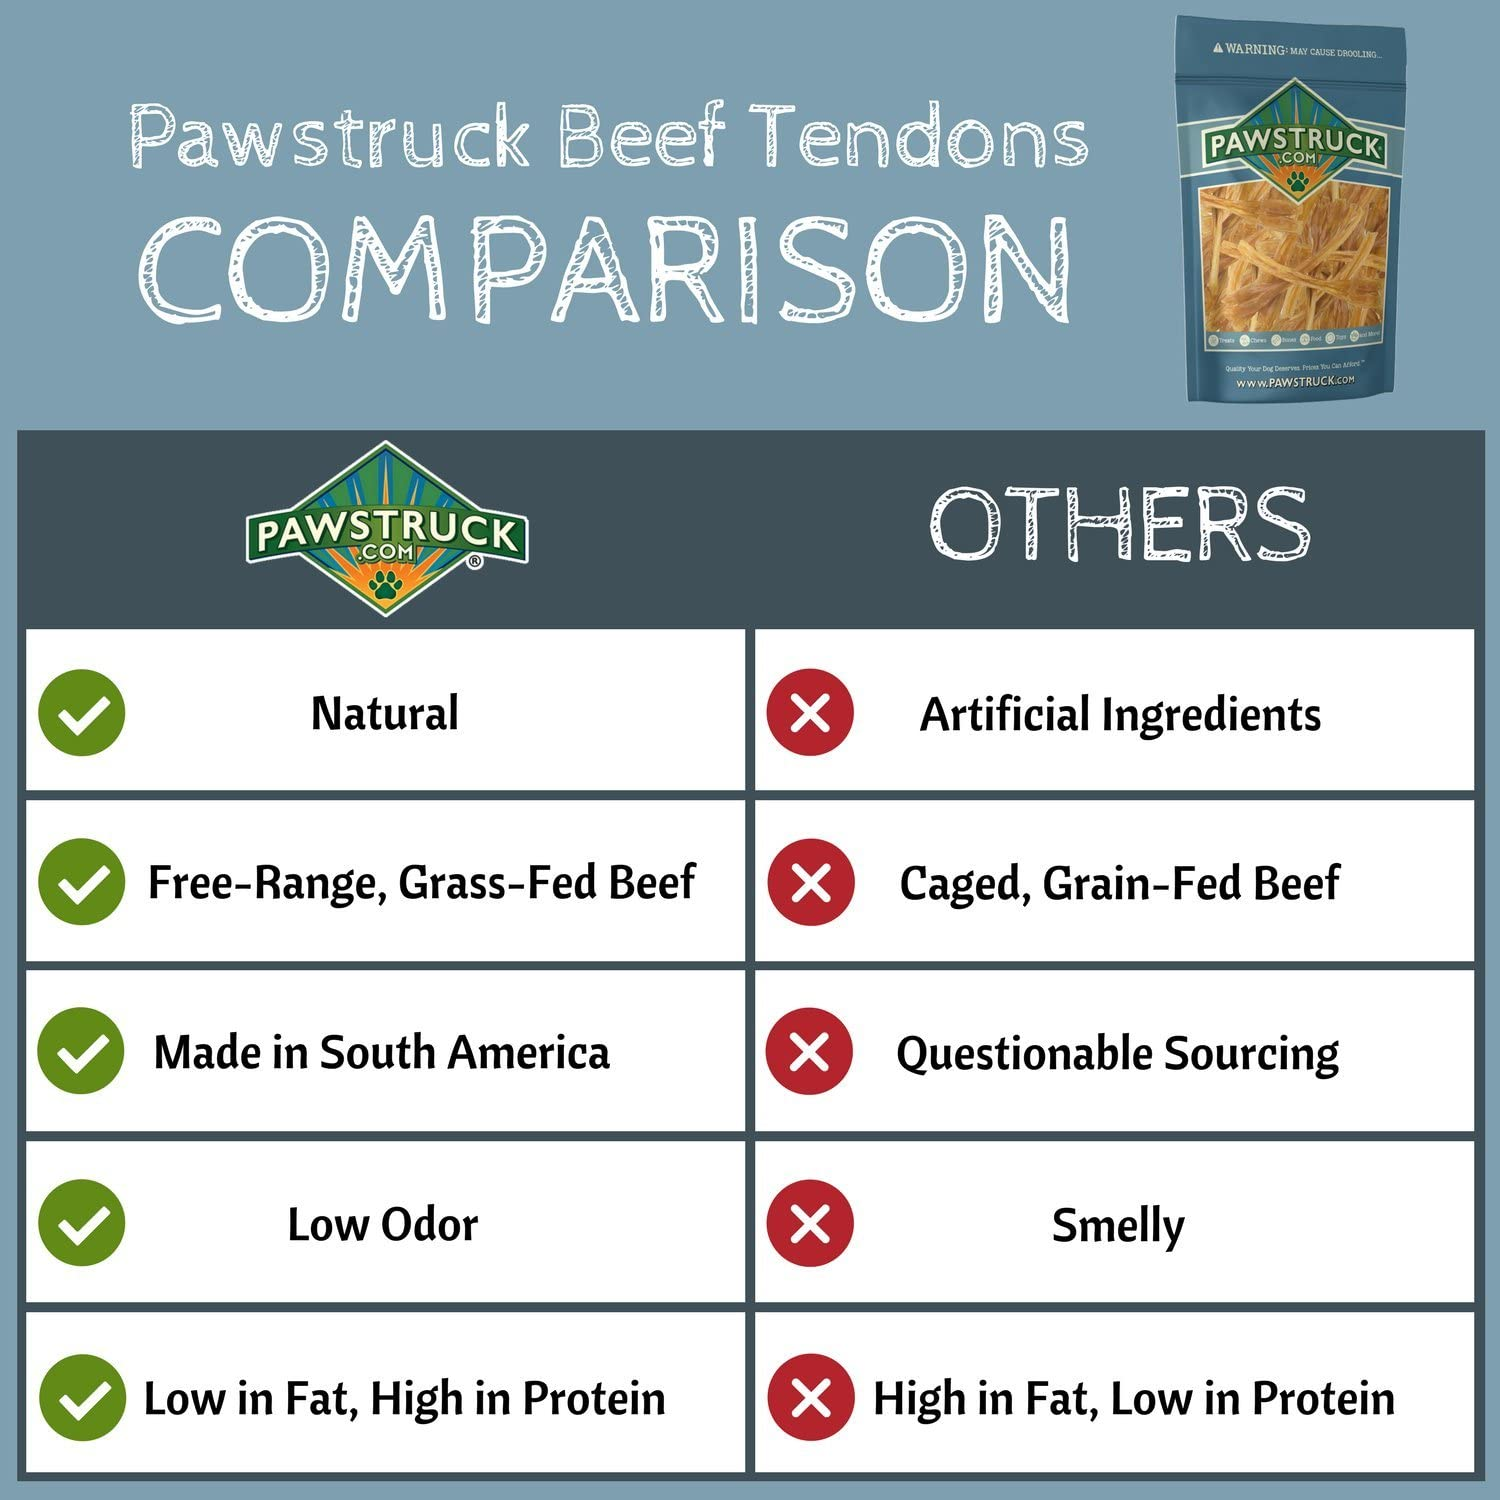 Pawstruck 7-9 Beef Tendon Chews for Dogs Natural Beef Strap Odorless Tendon Treats Cleans Teeth Naturally Free-Range, Grass-Fed Premium Beef Free of Artificial Ingredients, Colors, and Flavors